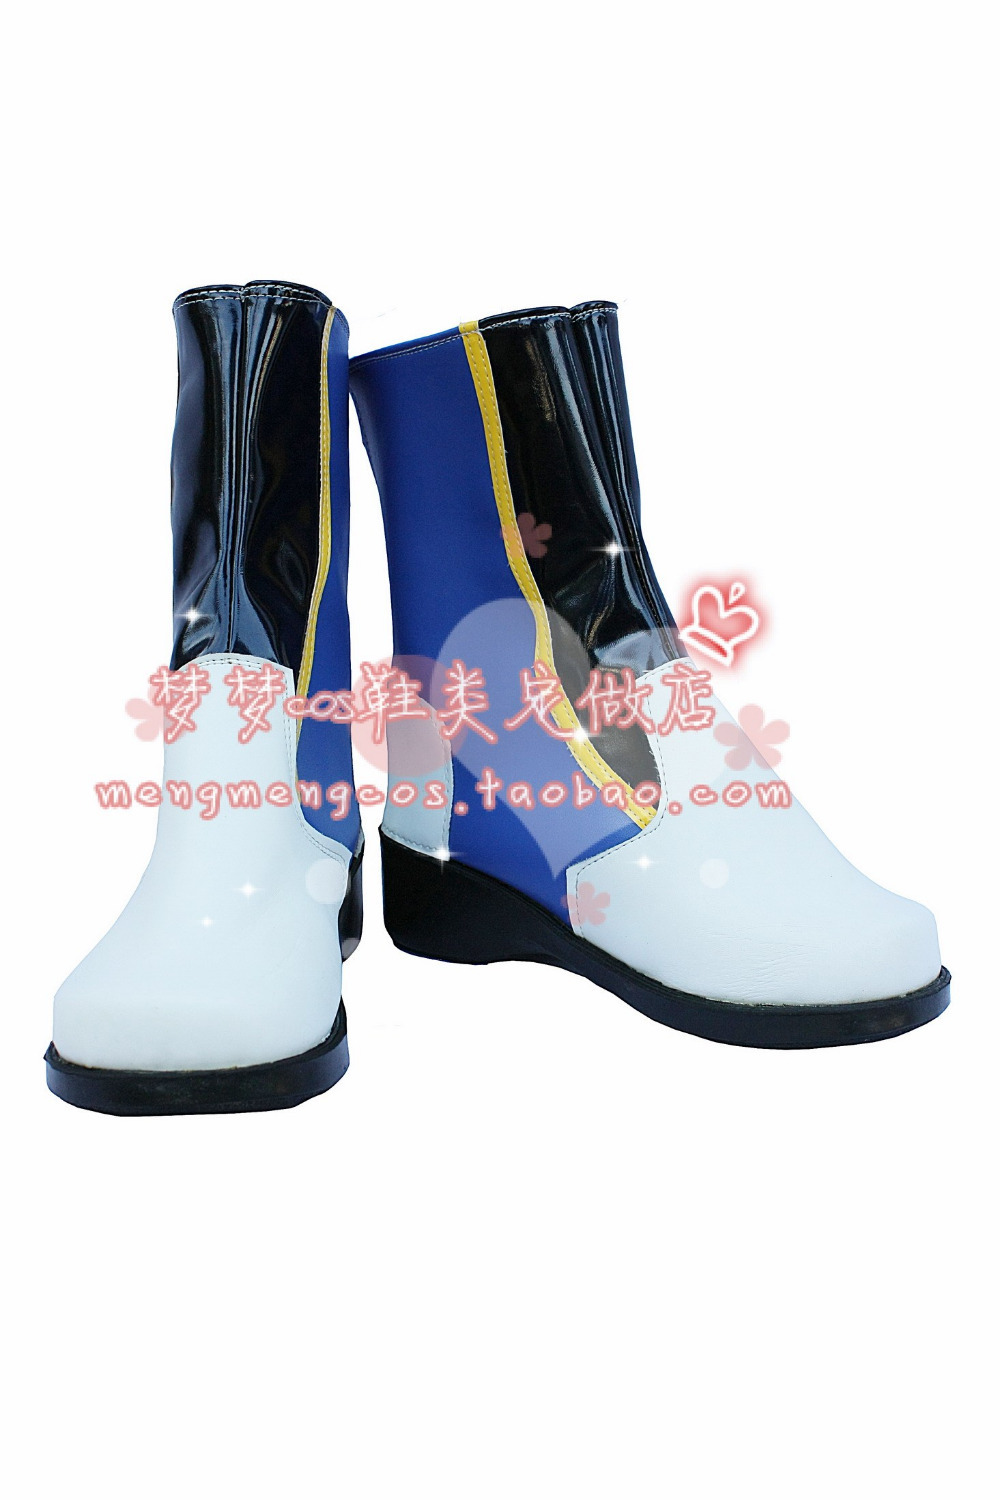 Vocaloid Miku Kaito Cosplay Shoes Anime Boots Customized<br>